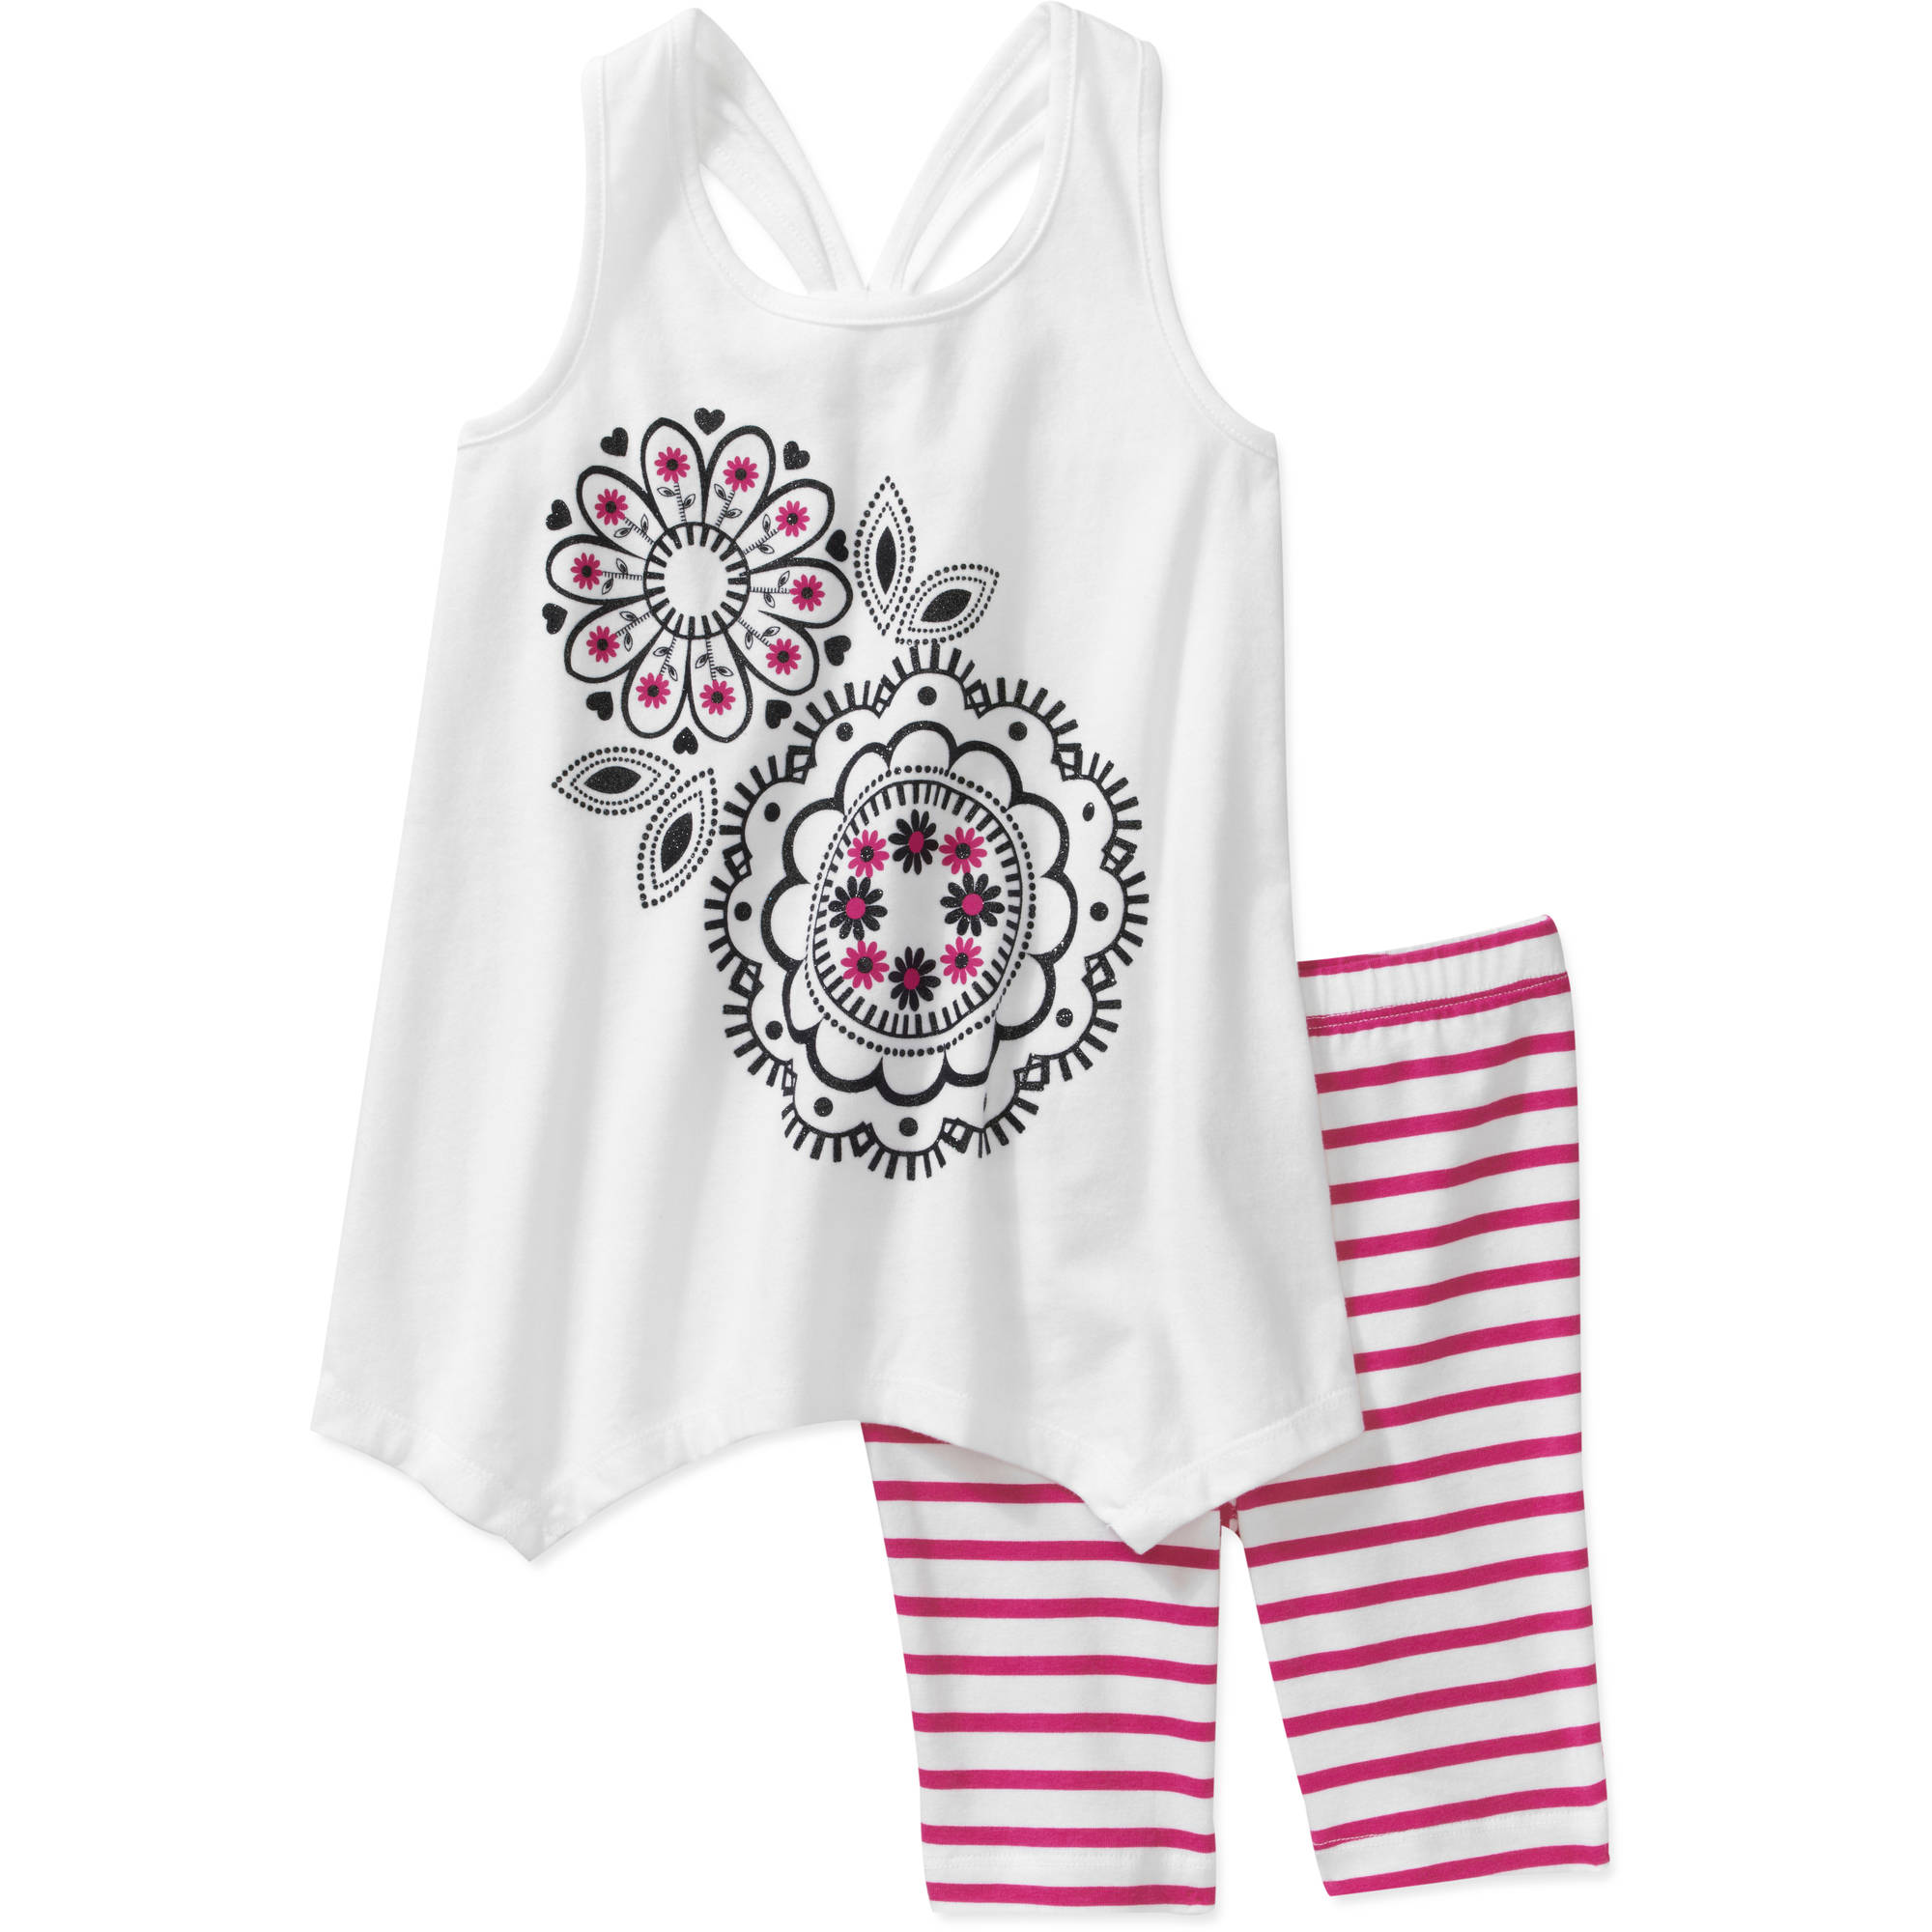 Healthtex Baby Girls' 2 Piece Knotted Back Tunic and Short Set